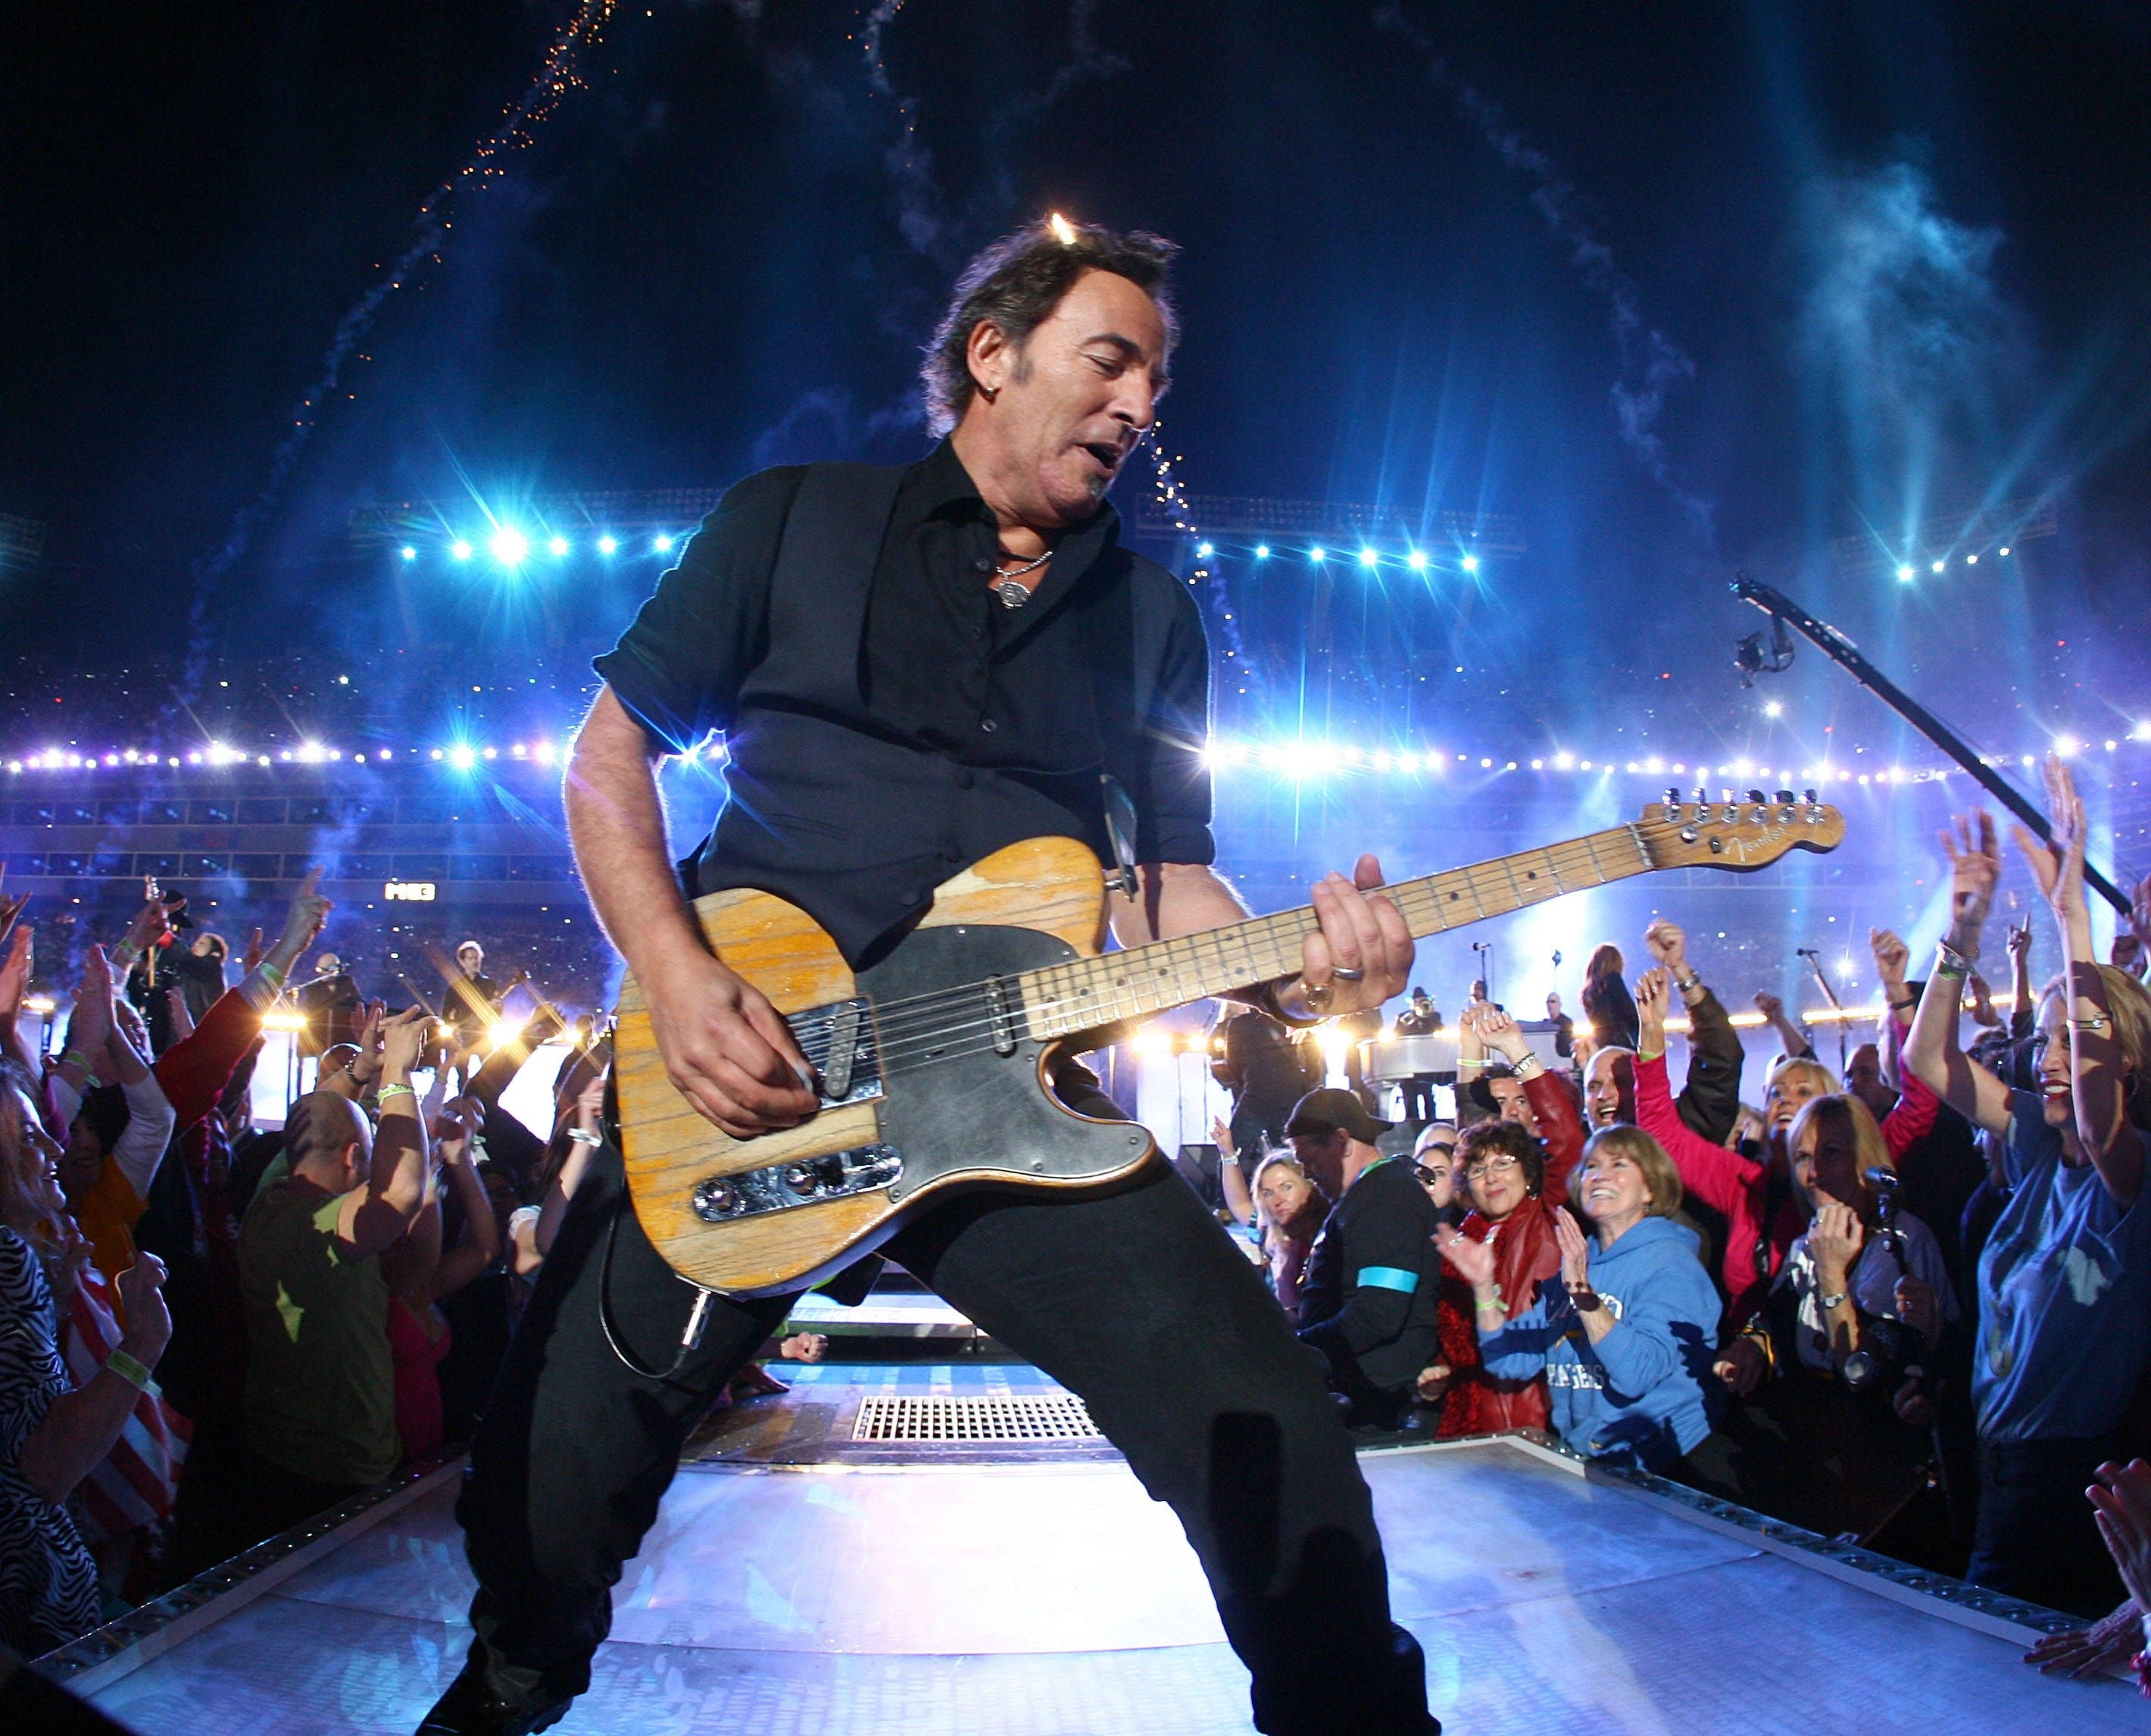 Bossbowl Jamiesquire #brucespringsteen #oraclearena #oakland with Bruce Springsteen Super Bowl